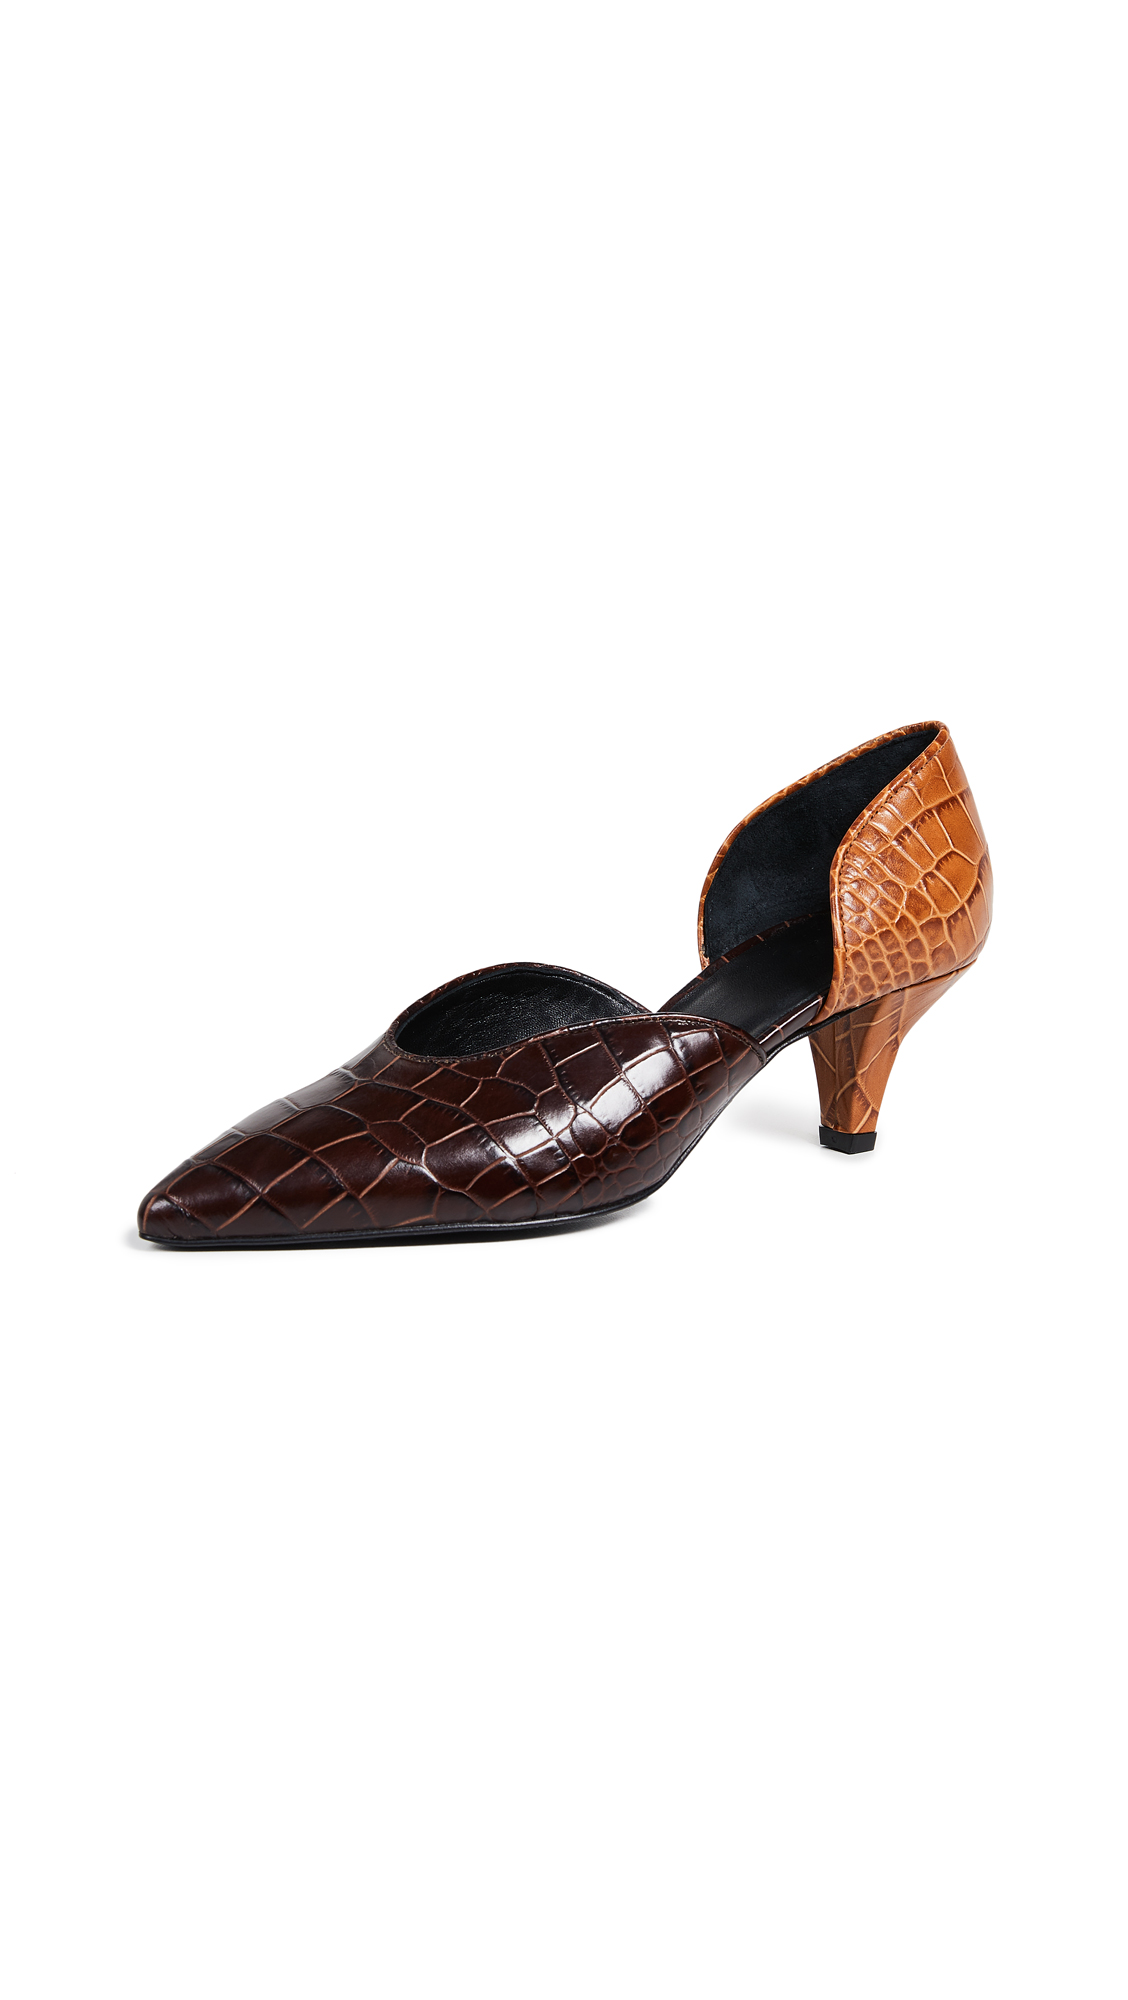 Trademark Ruby d'Orsay Pumps In Chocolate